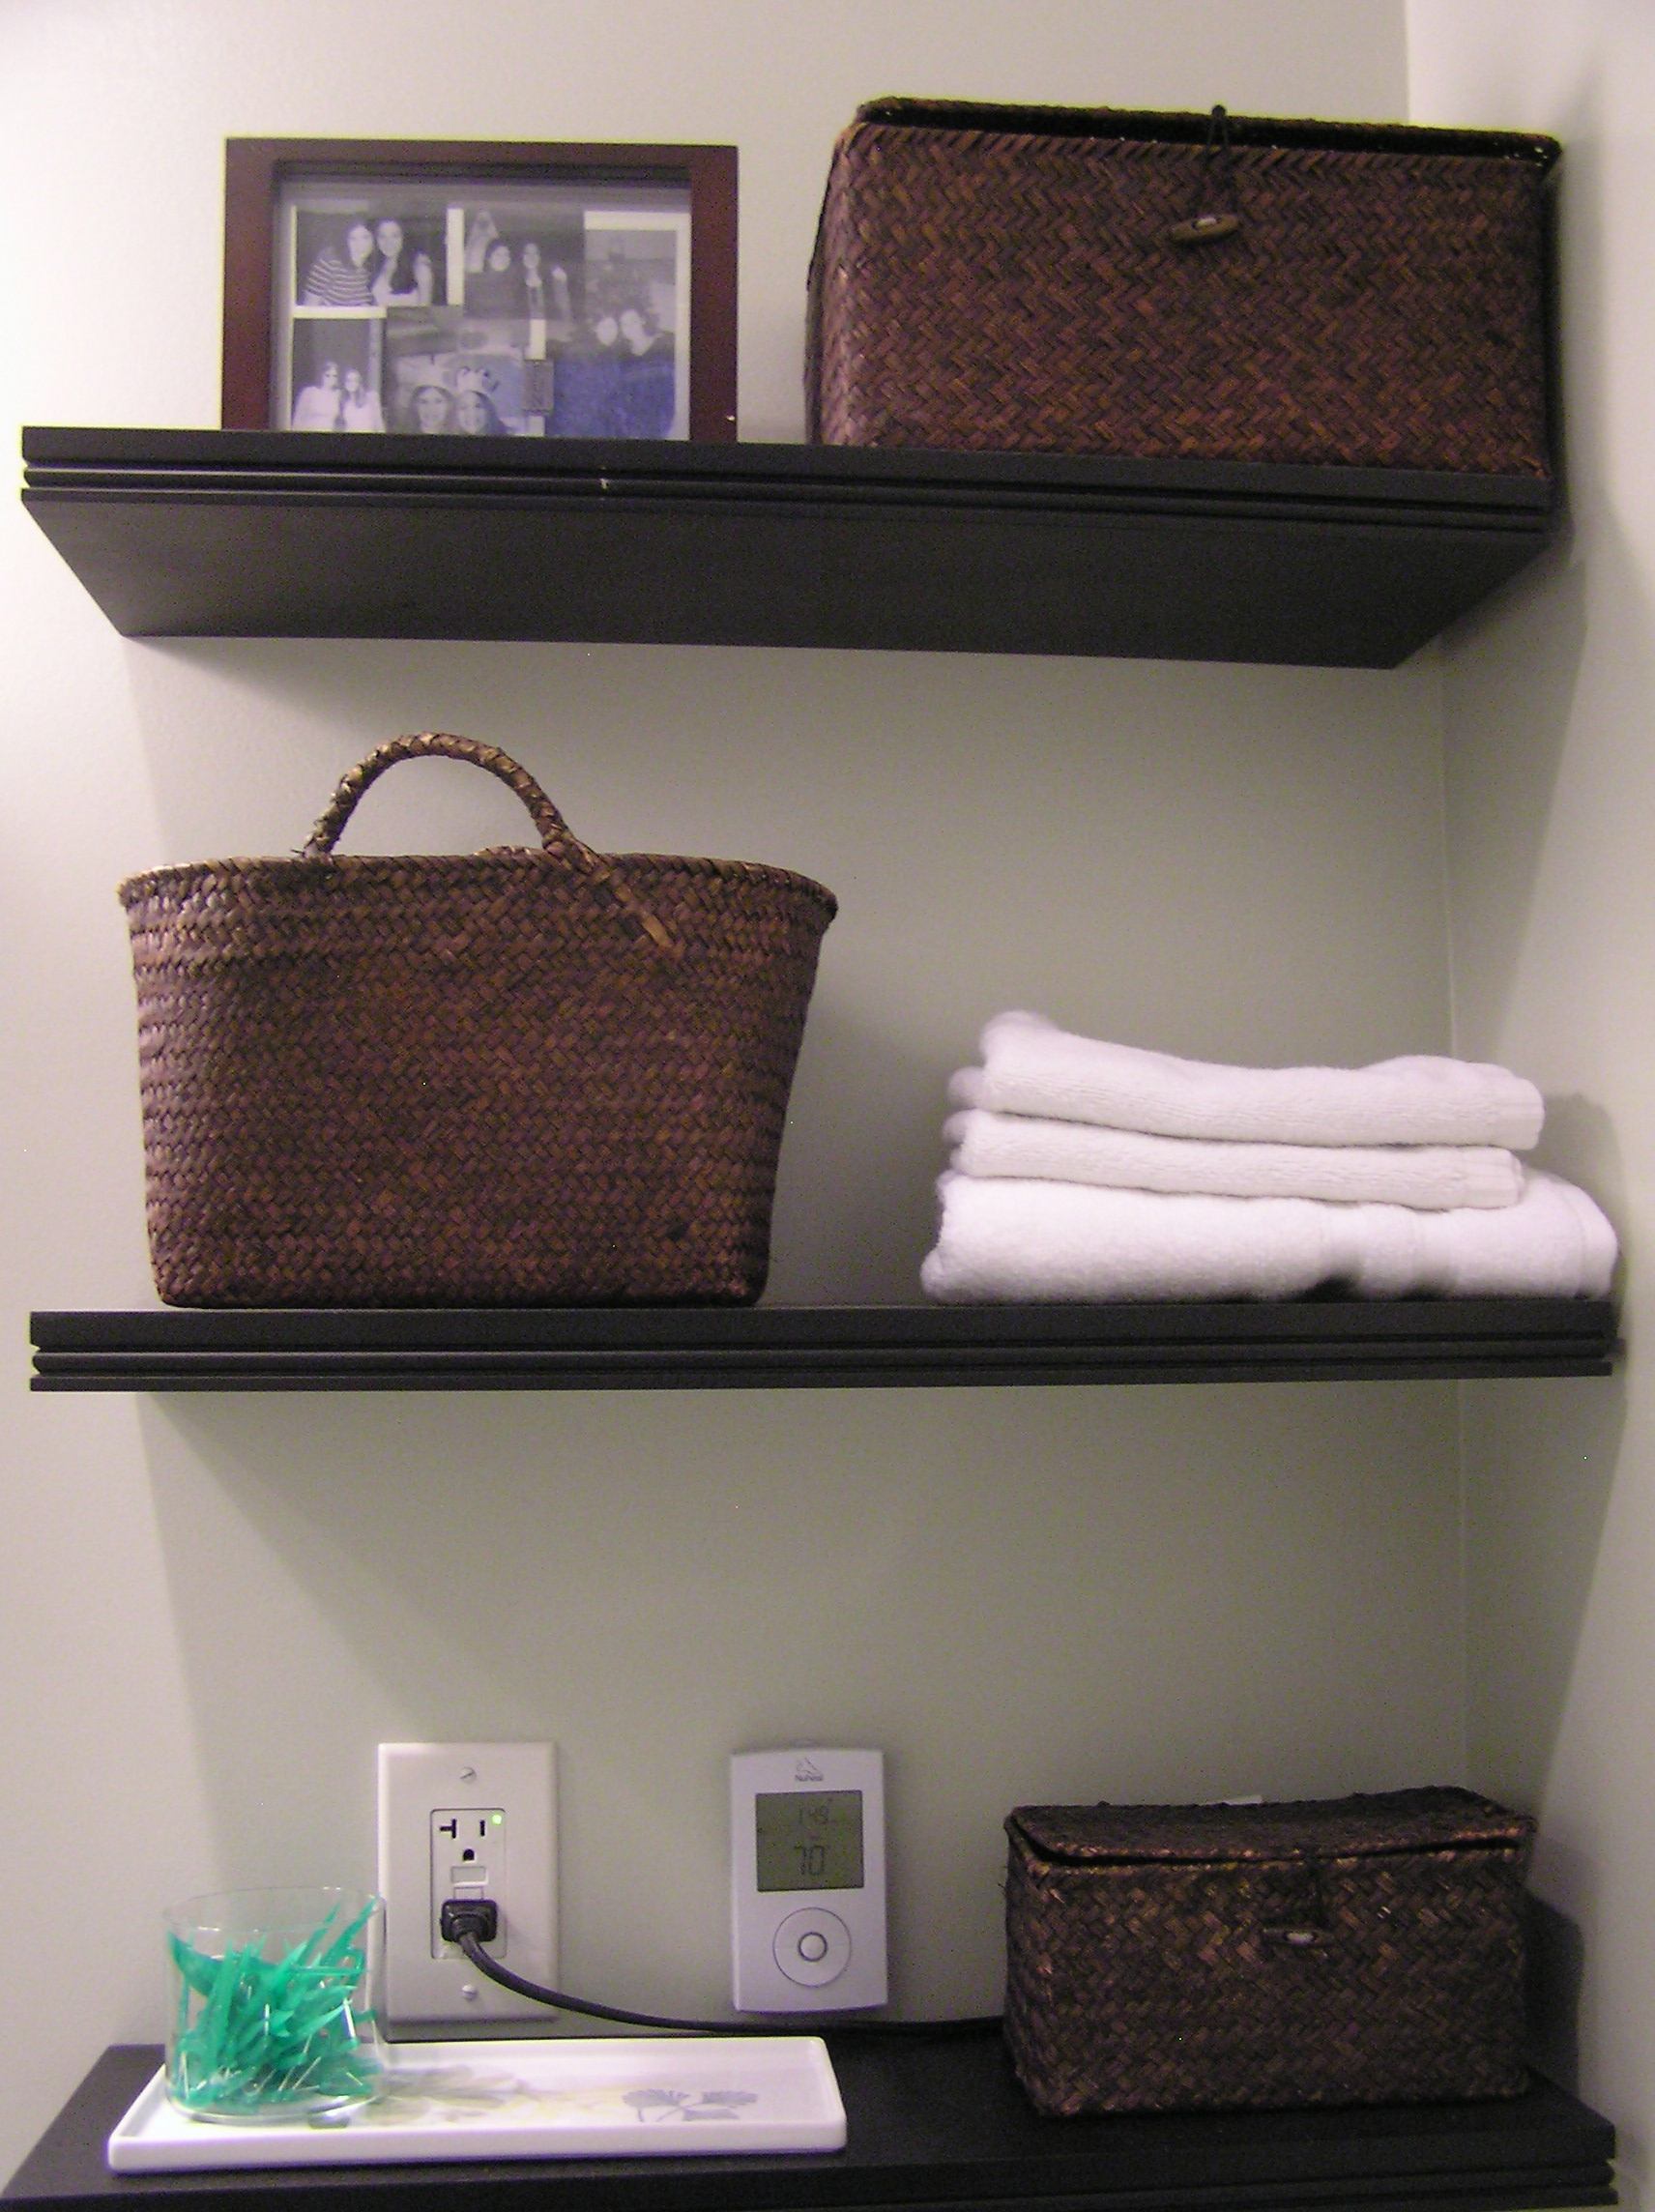 Bathroom wall storage ideas - Olympus Digital Camera Hanging Shelves Bathroom